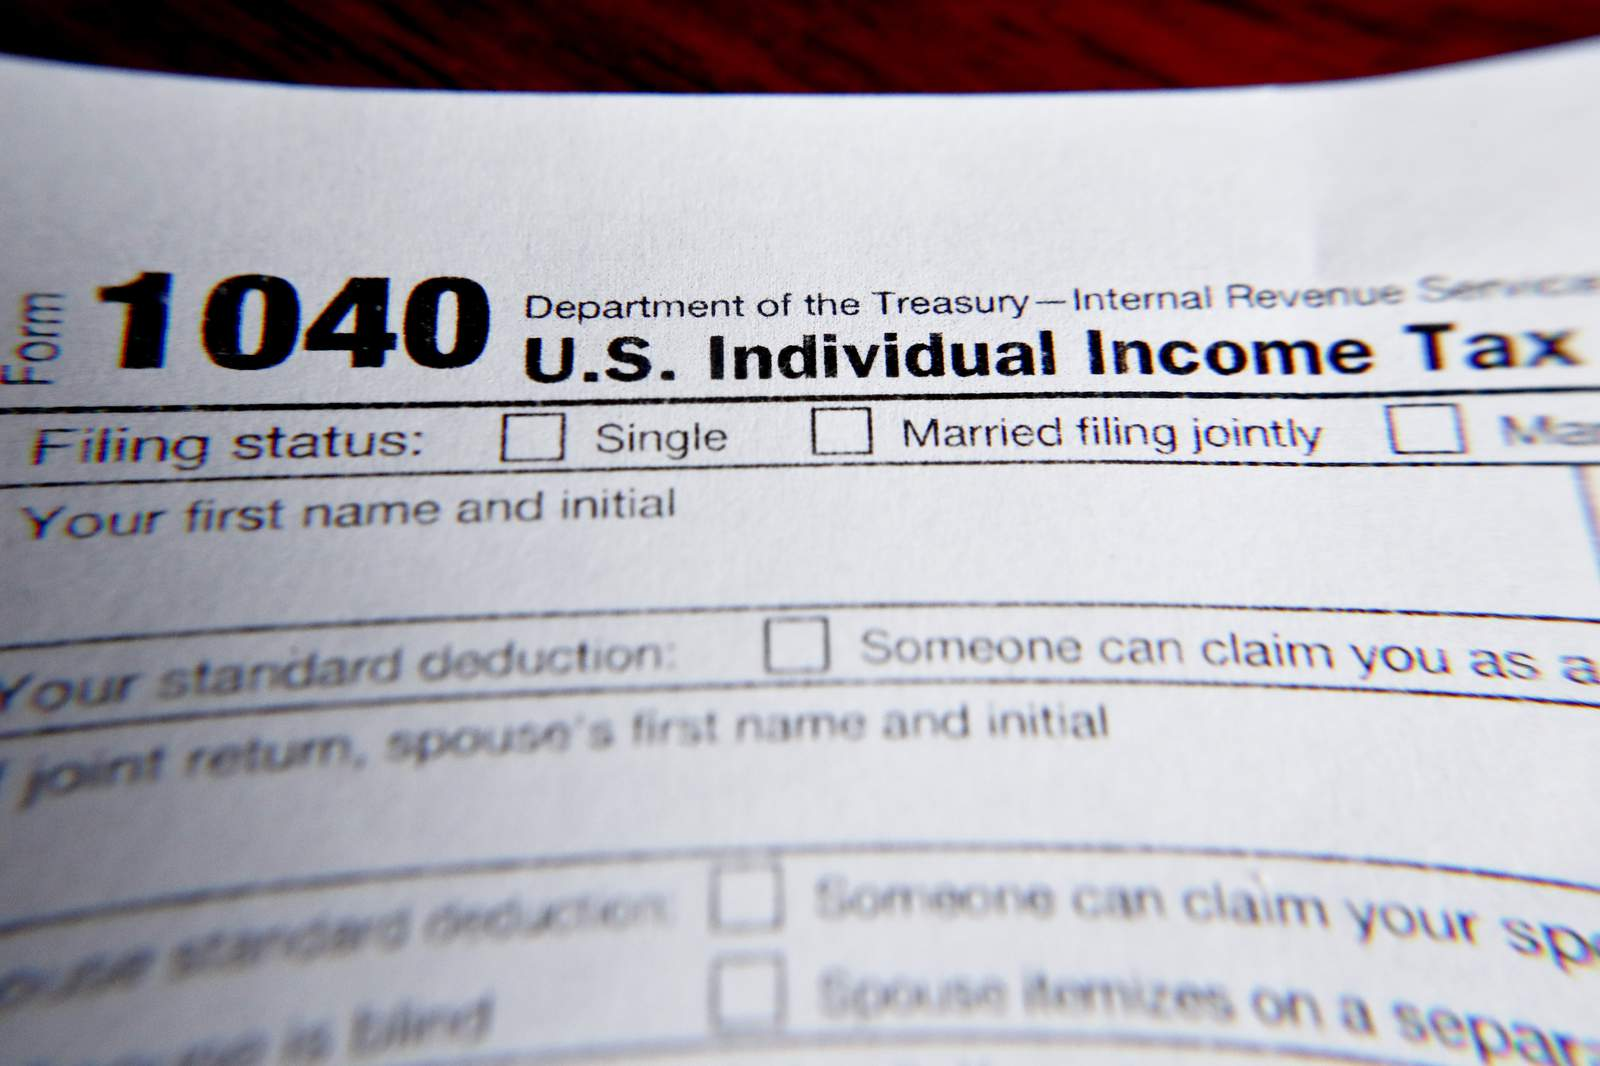 FILE - This Wednesday, Feb. 13, 2019 file photo shows part of a 1040 federal tax form printed from the Internal Revenue Service website, in Zelienople, Pa.  Tax filing season will start a bit later and look a bit different this year. Thats because the pandemic that defined 2020 has seeped into tax time as well. If you worked from home, received a relief payment, took on some gig work or filed unemployment benefits _ or someone filed a fake claim in your name _ there are things you need to be aware of. Likewise if you normally receive certain tax credits. The IRS will begin accepting tax returns on Feb. 12, 2021.  (AP Photo/Keith Srakocic, File)